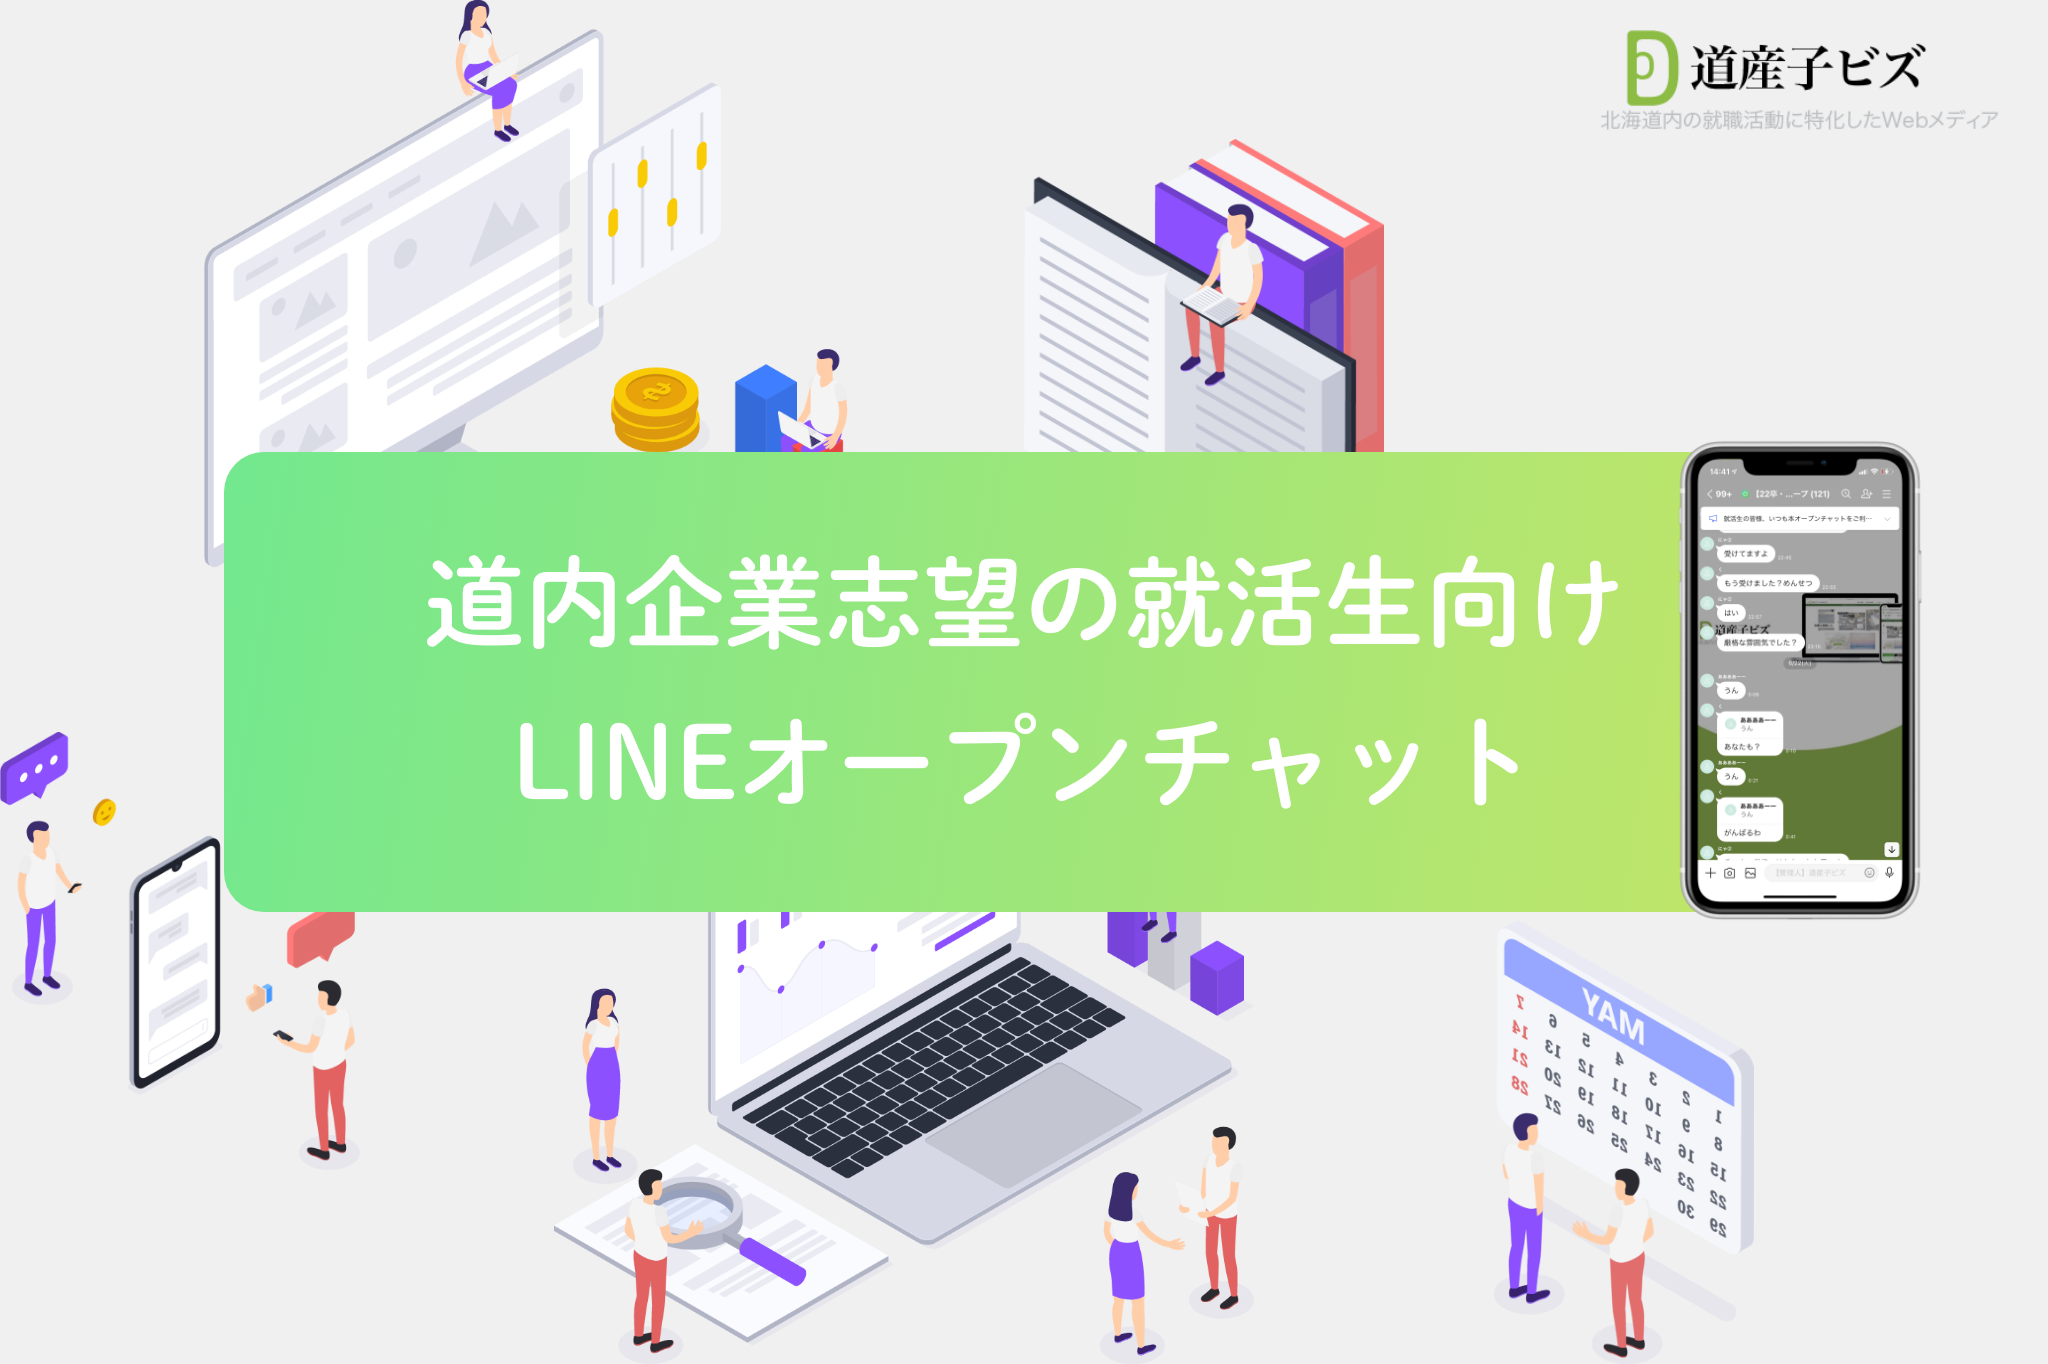 line-openchat@2x